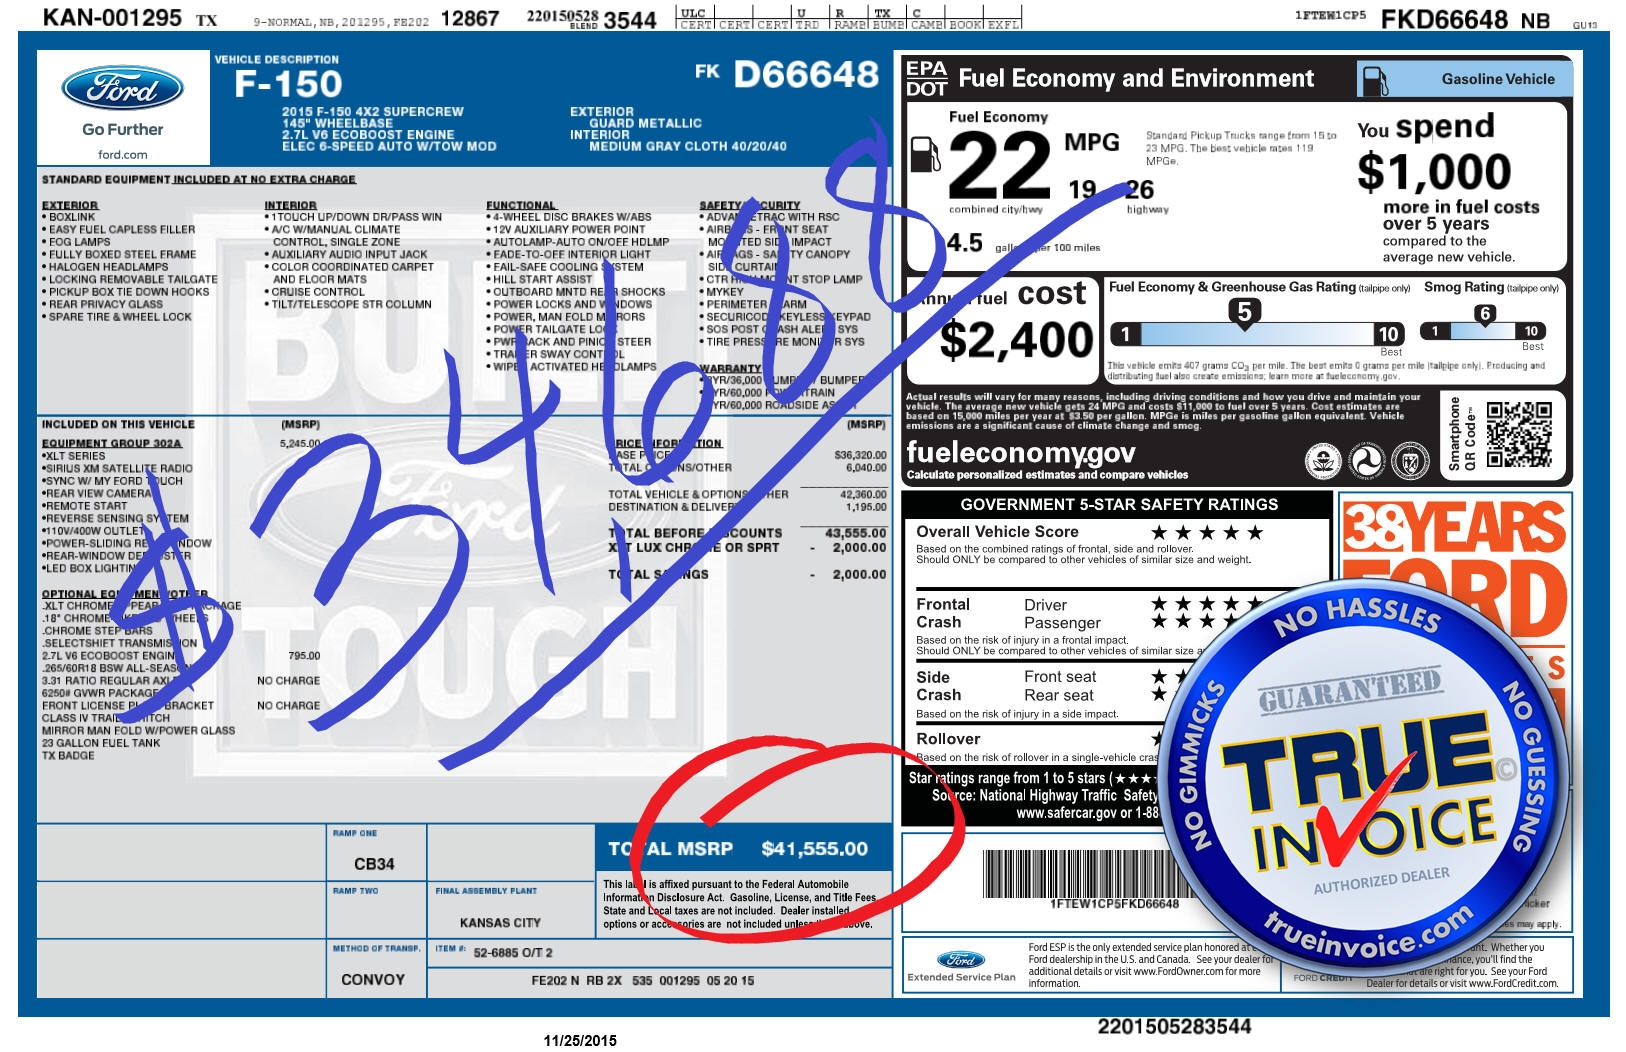 true invoice 2016 ford f150 chevy invoice price